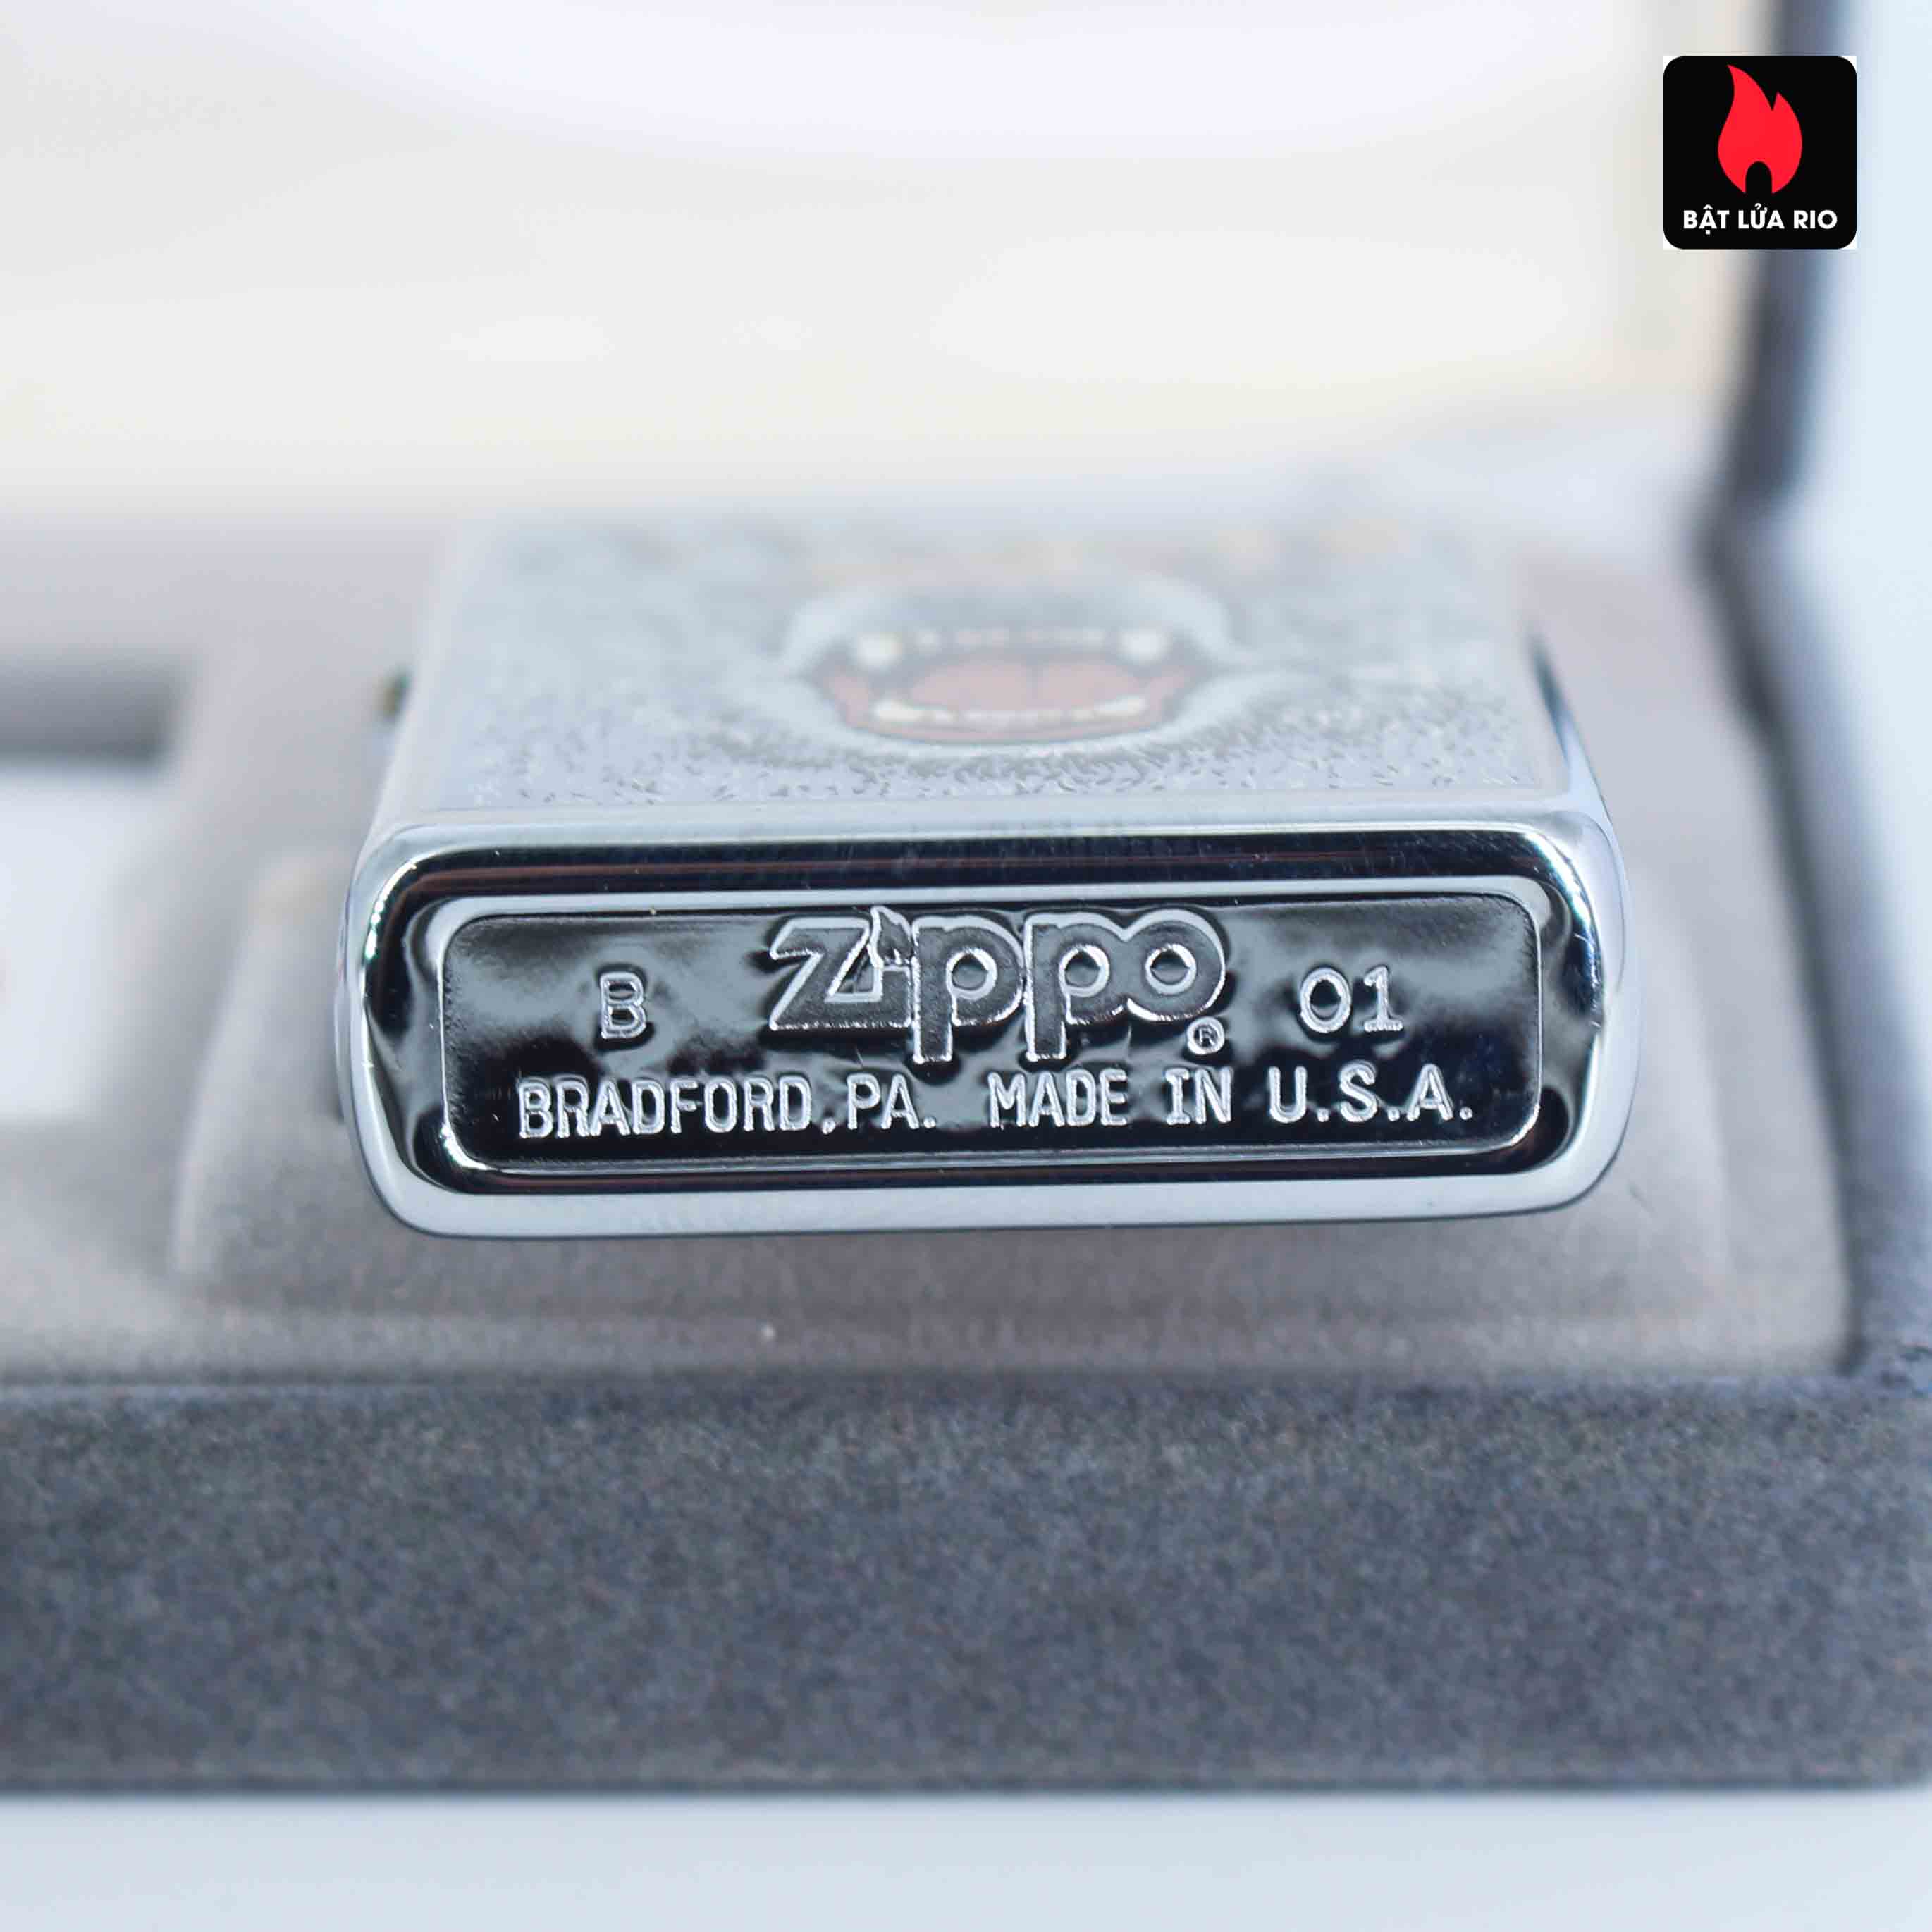 Zippo 2001 - Wild Lighters Edition - Limited Edition /1000 17